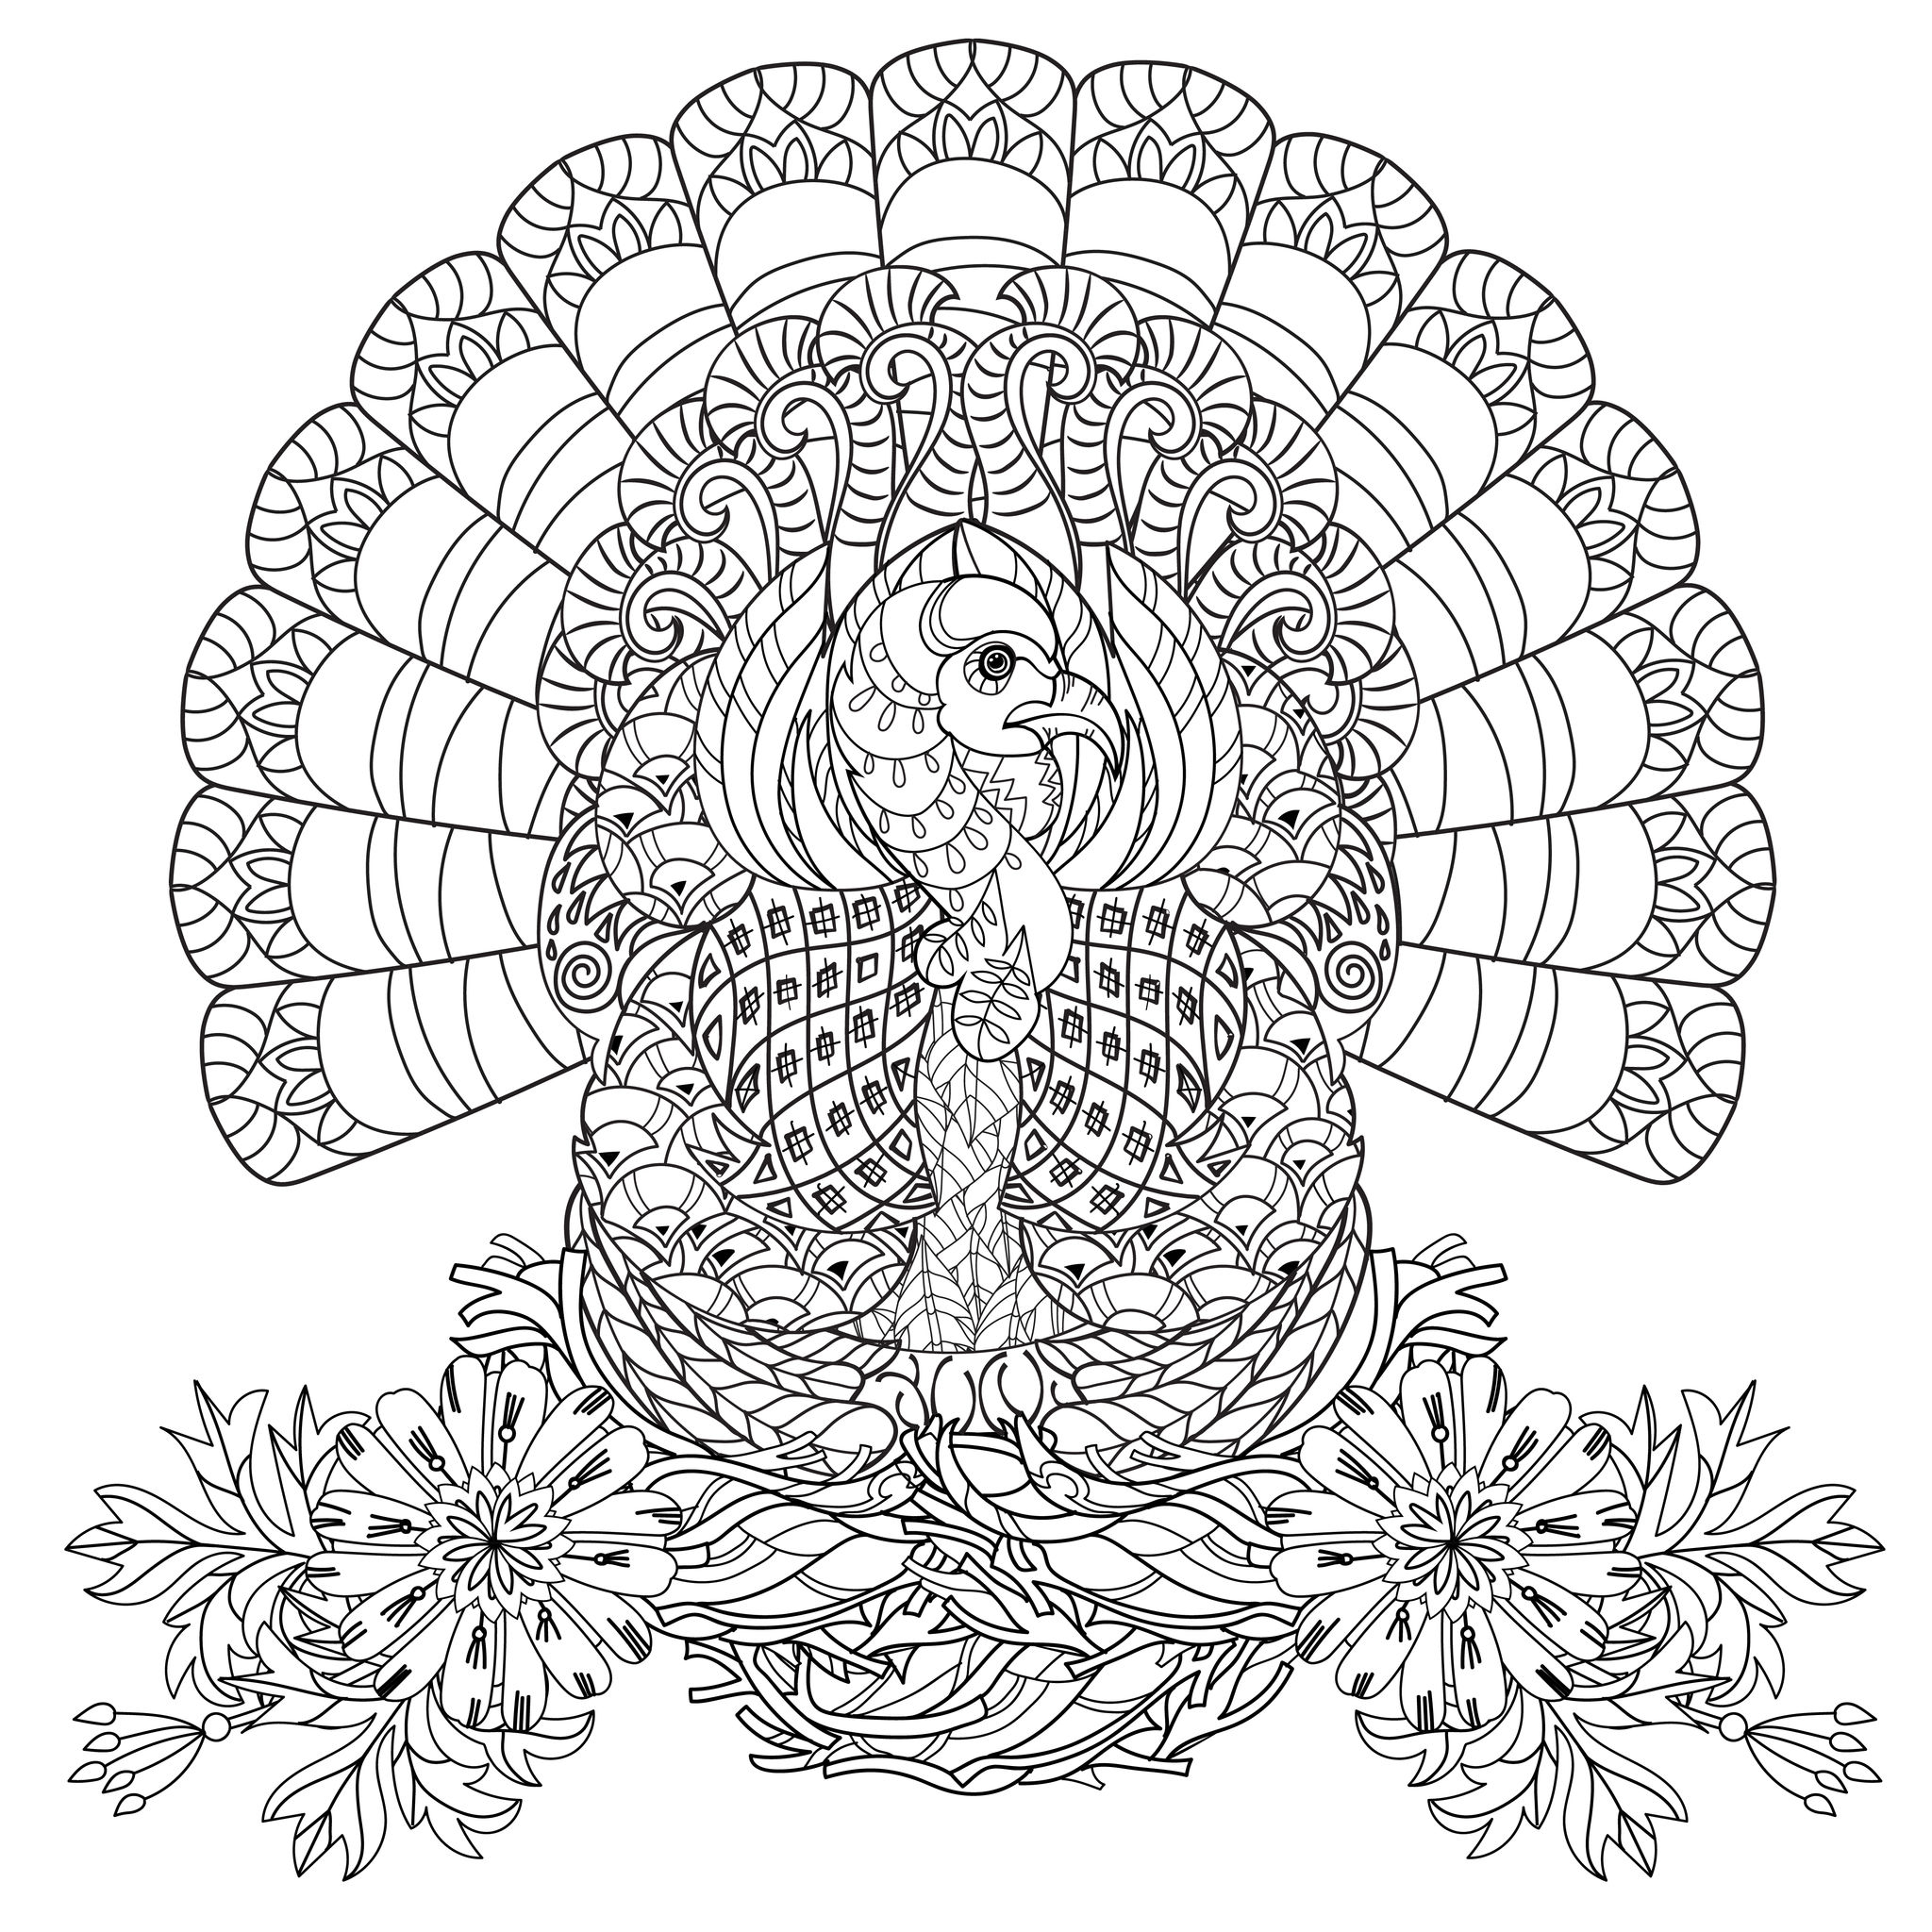 Thanksgiving turkey - Thanksgiving - Coloring pages for adults